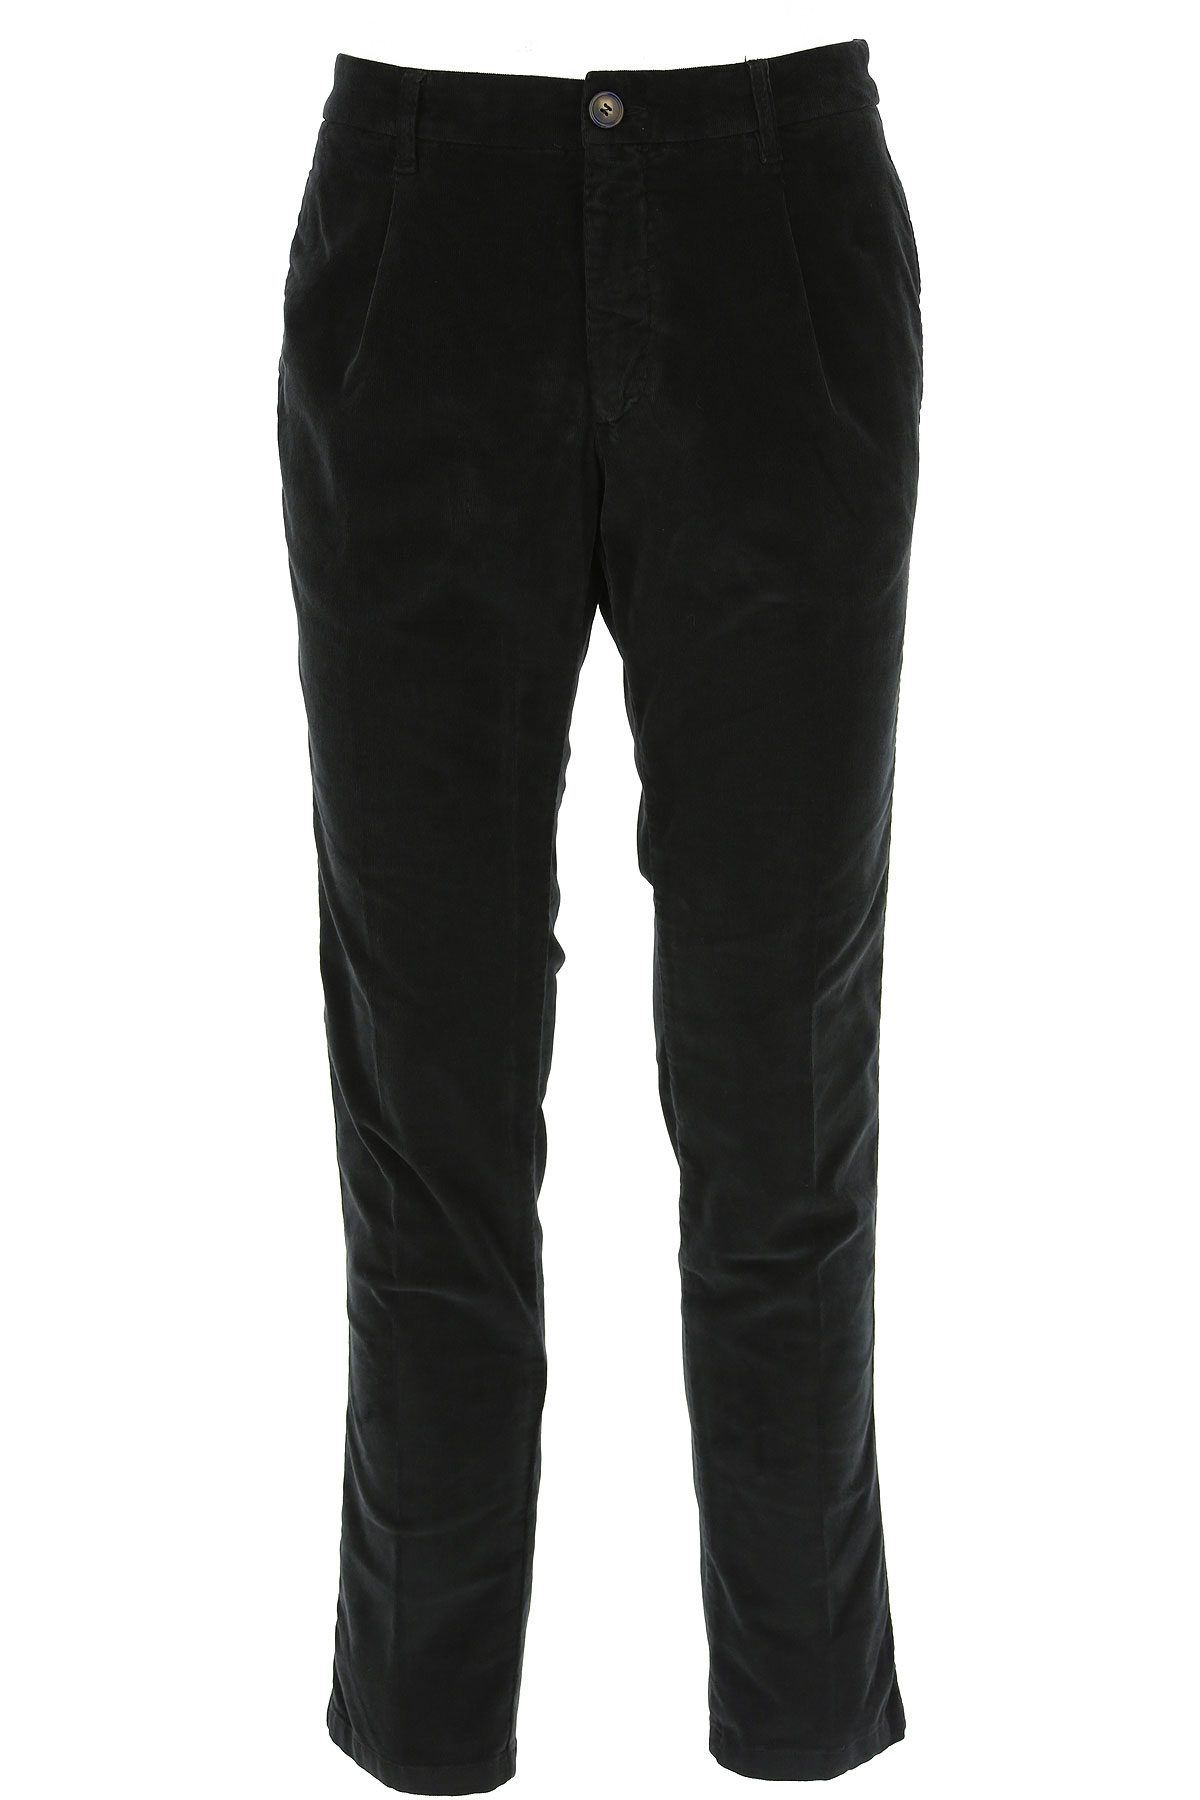 J.W. Brine Pants for Men, blackboard, Cotton, 2019, 30 36 38 40